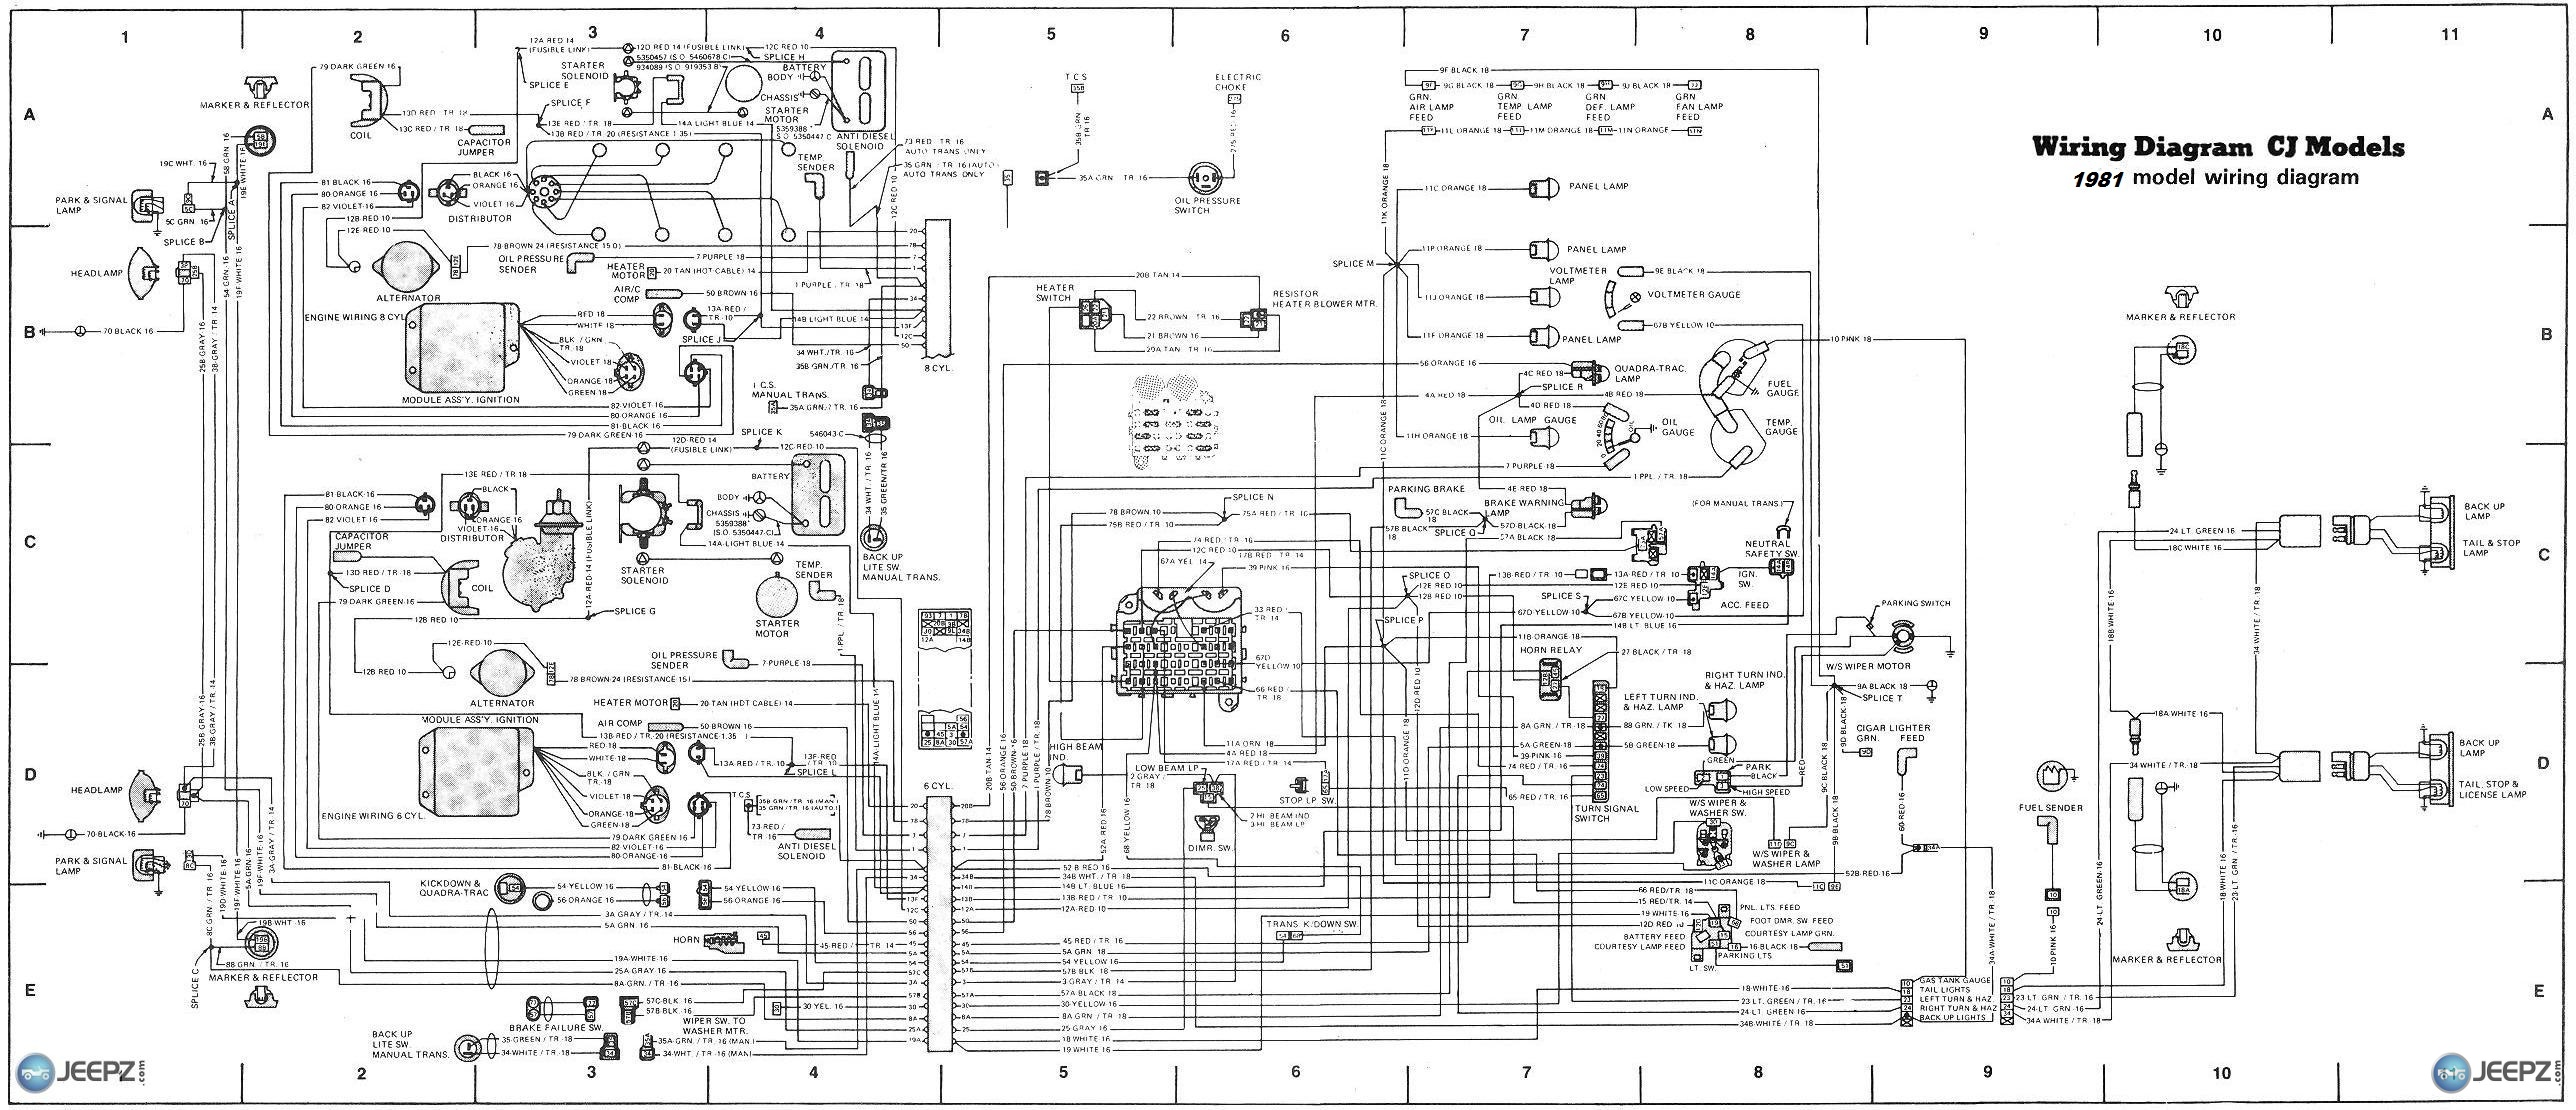 1980 jeep cj7 wiring diagram auto electrical wiring diagram wiring diagram  for 1978 jeep cj5 1980